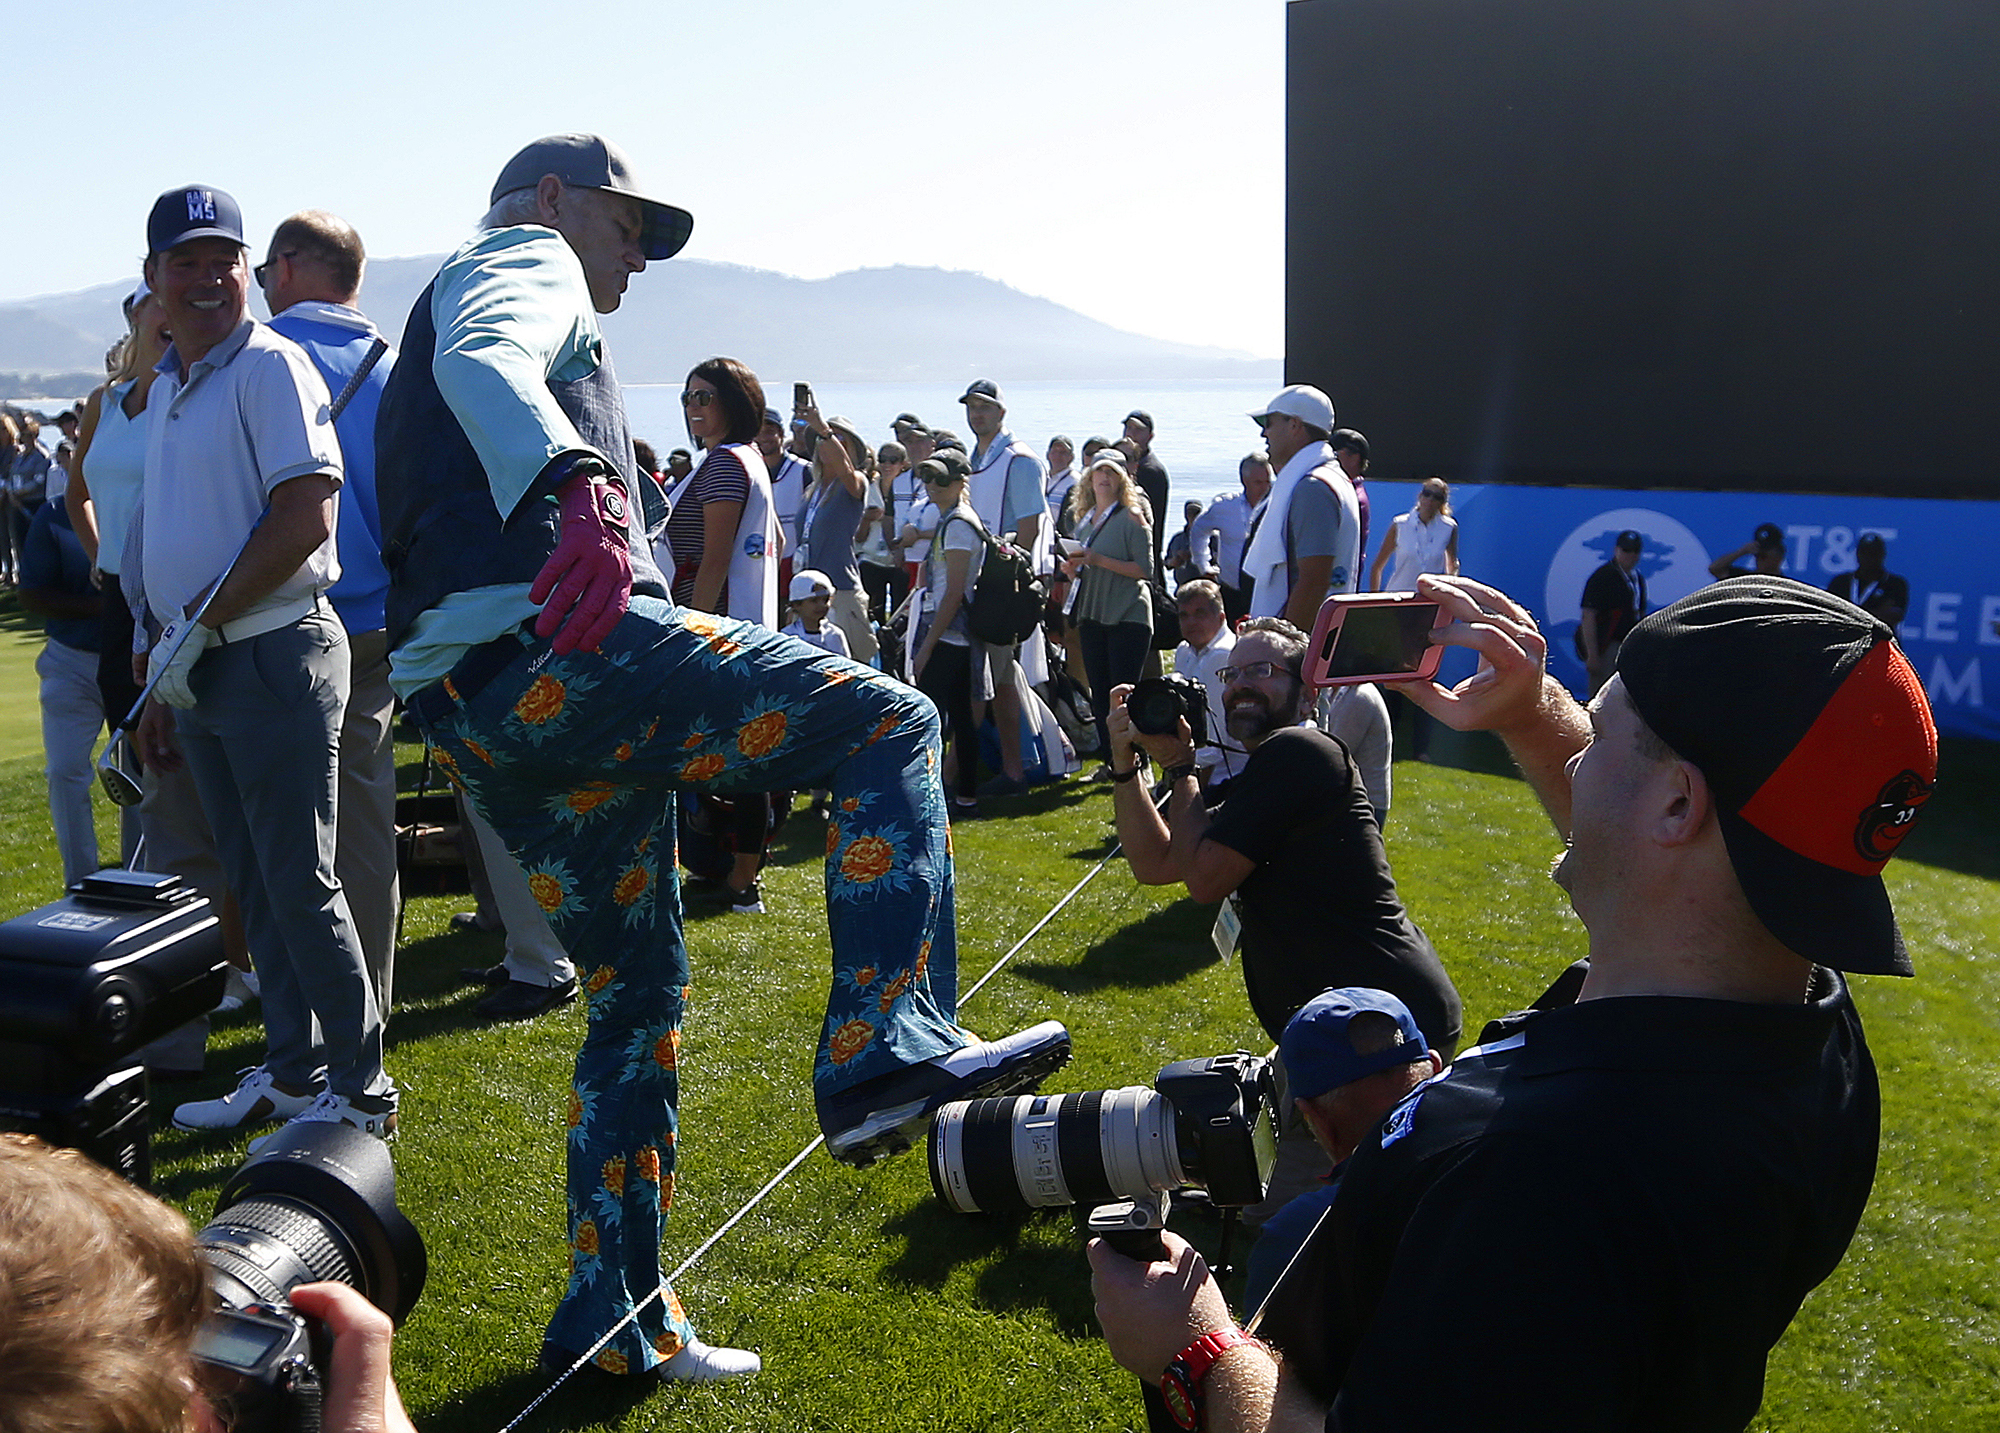 Dustin Johnson rallies to take share of lead at Pebble Beach